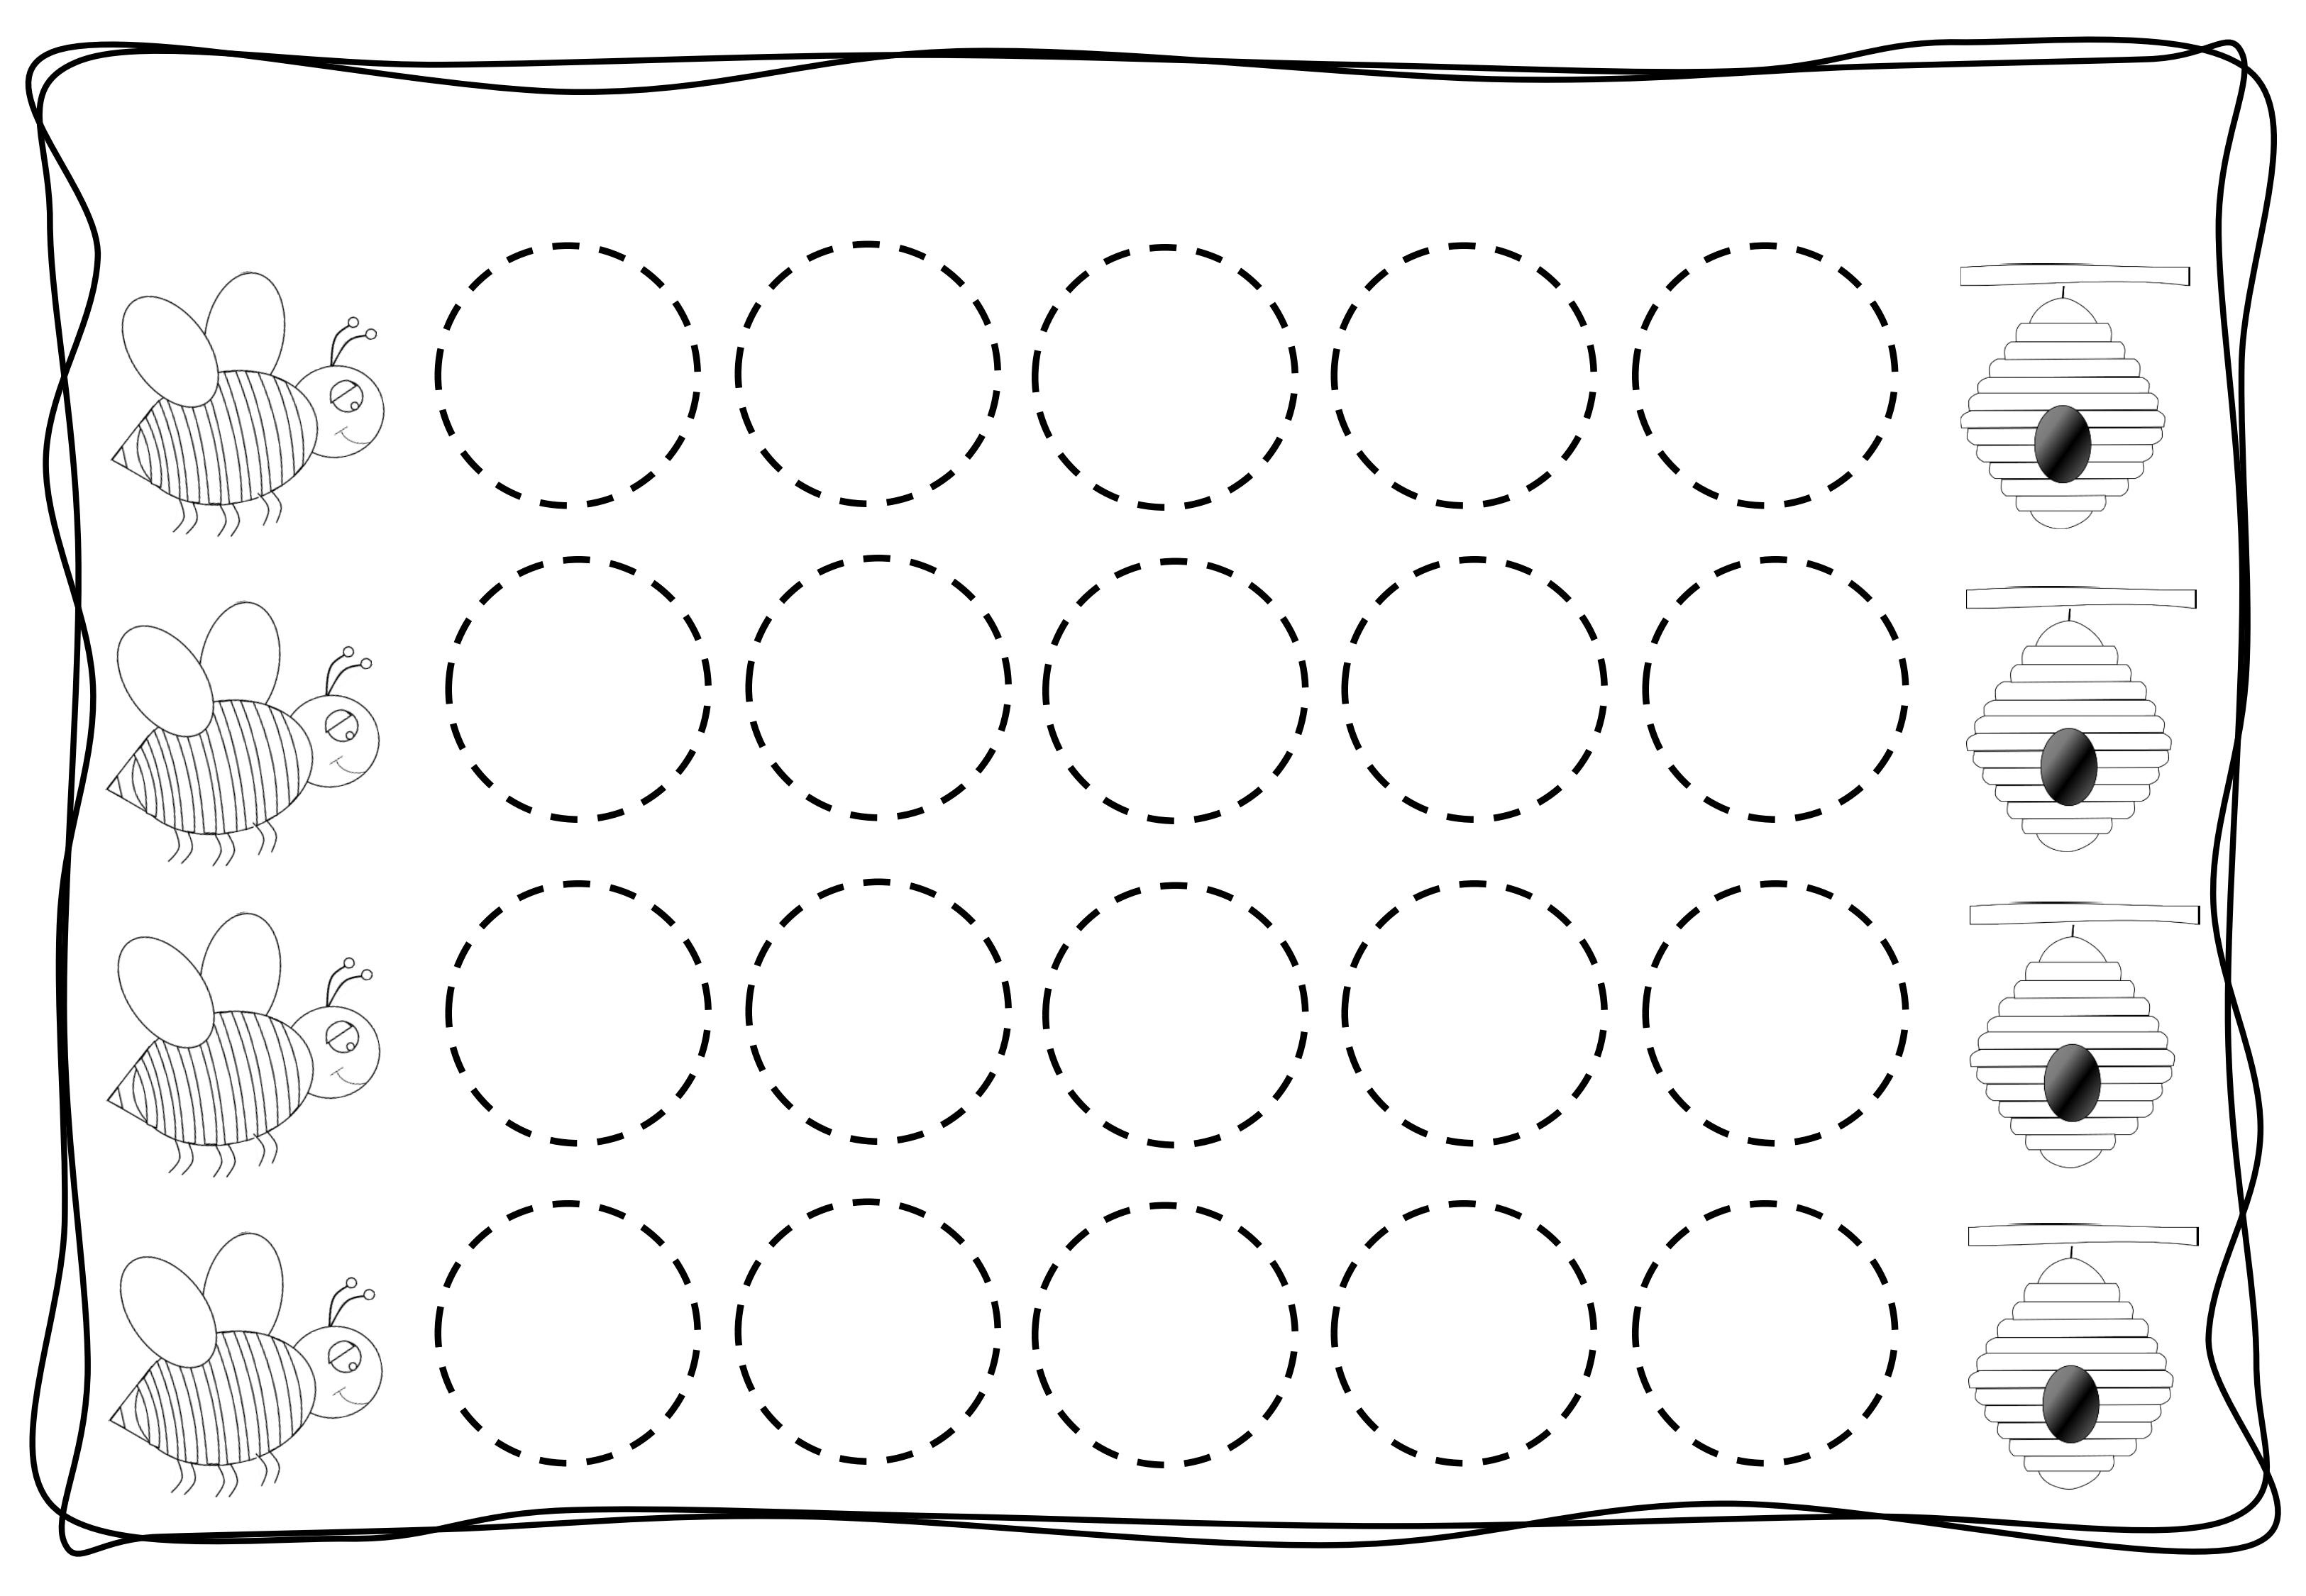 Greetings Hoja De Trabajo together with Score Board as well Cursive F furthermore Printable Pattern Worksheets For Preschoolers Tracing Patterns Glamorous Flowers Free Download This Page Has A Lot Of Flower Trace Worksheet Crafts furthermore Circles Tracing Worksheets For Kids. on name tracing worksheets